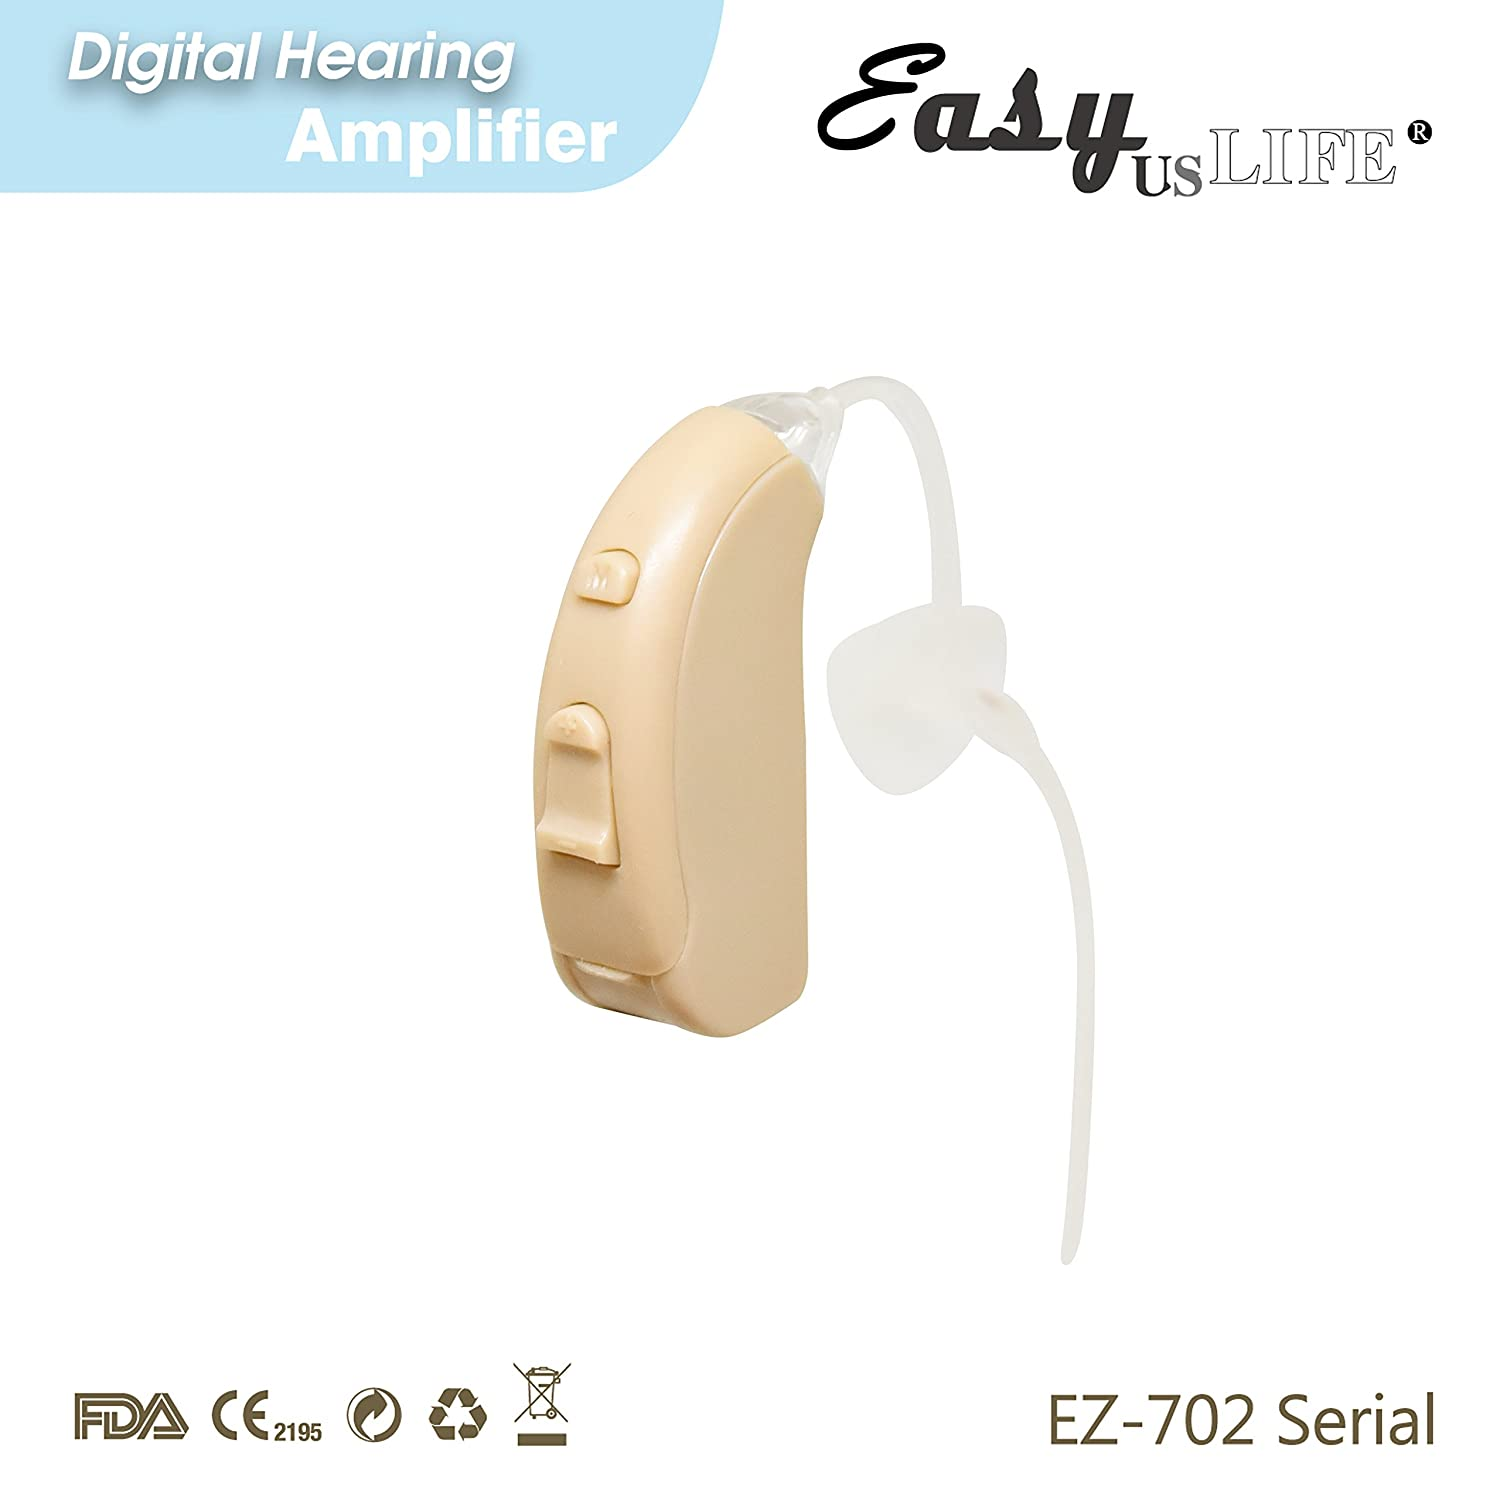 Right Ear Amplifier Beige Color By Easyuslife Hearing Living Aids Amplifiers Accessories Device With Digital Noise Cancellation Discreet Lightweight